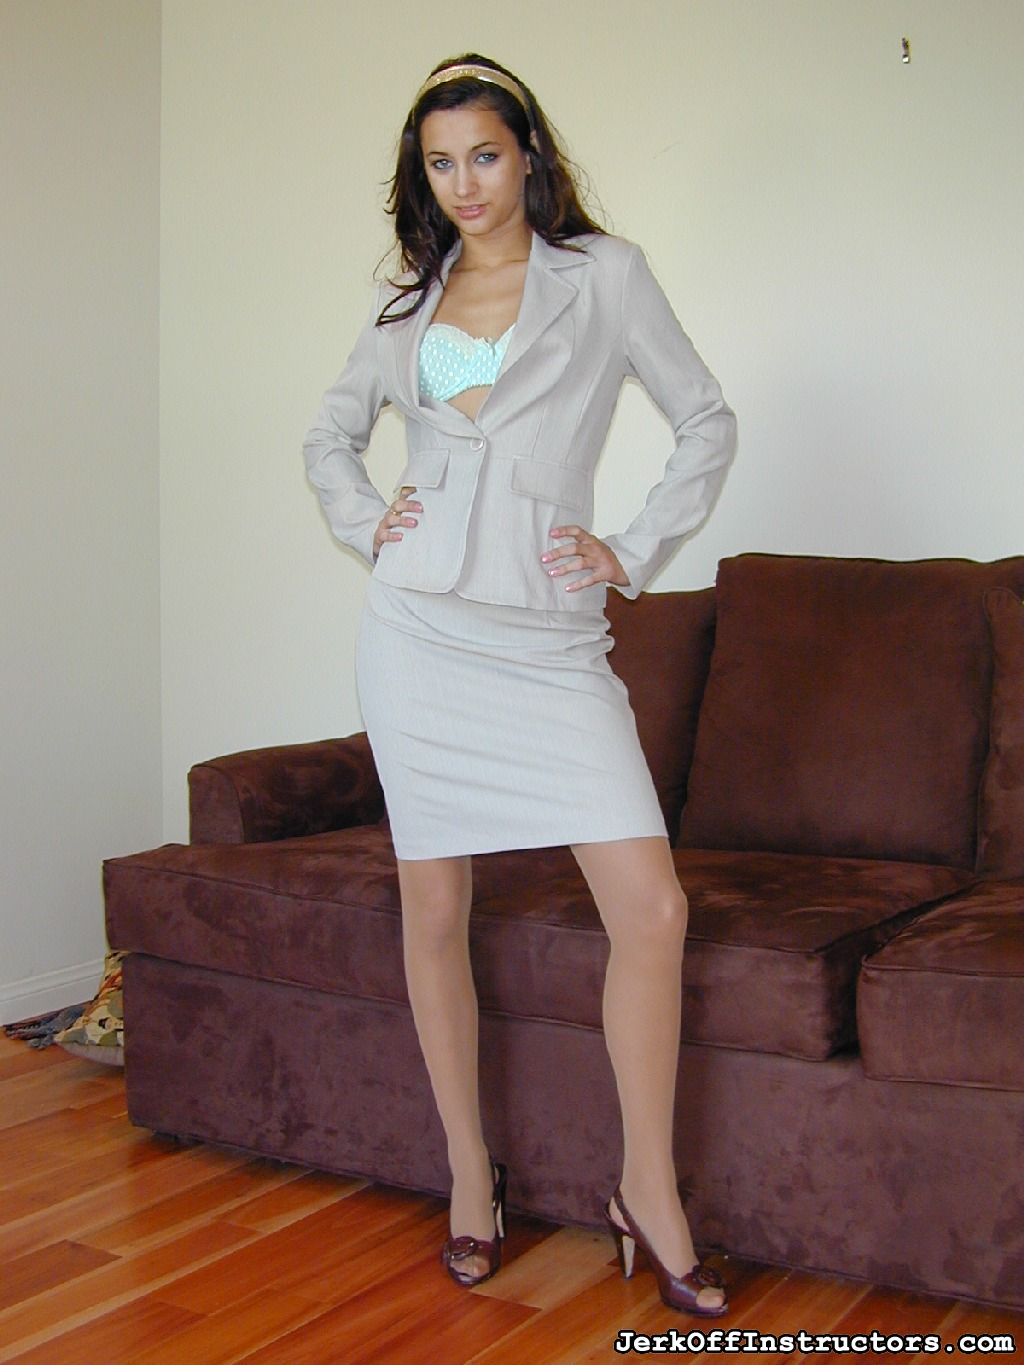 Georgia jones  suit 90  georgia jones  in a tight business suit nude sheer to waist pantyhose with lots of sexual office games to set you off. Georgia Jones' in a tight business suit, nude sheer to waist pantyhose with lots of sexual office games to set you off!